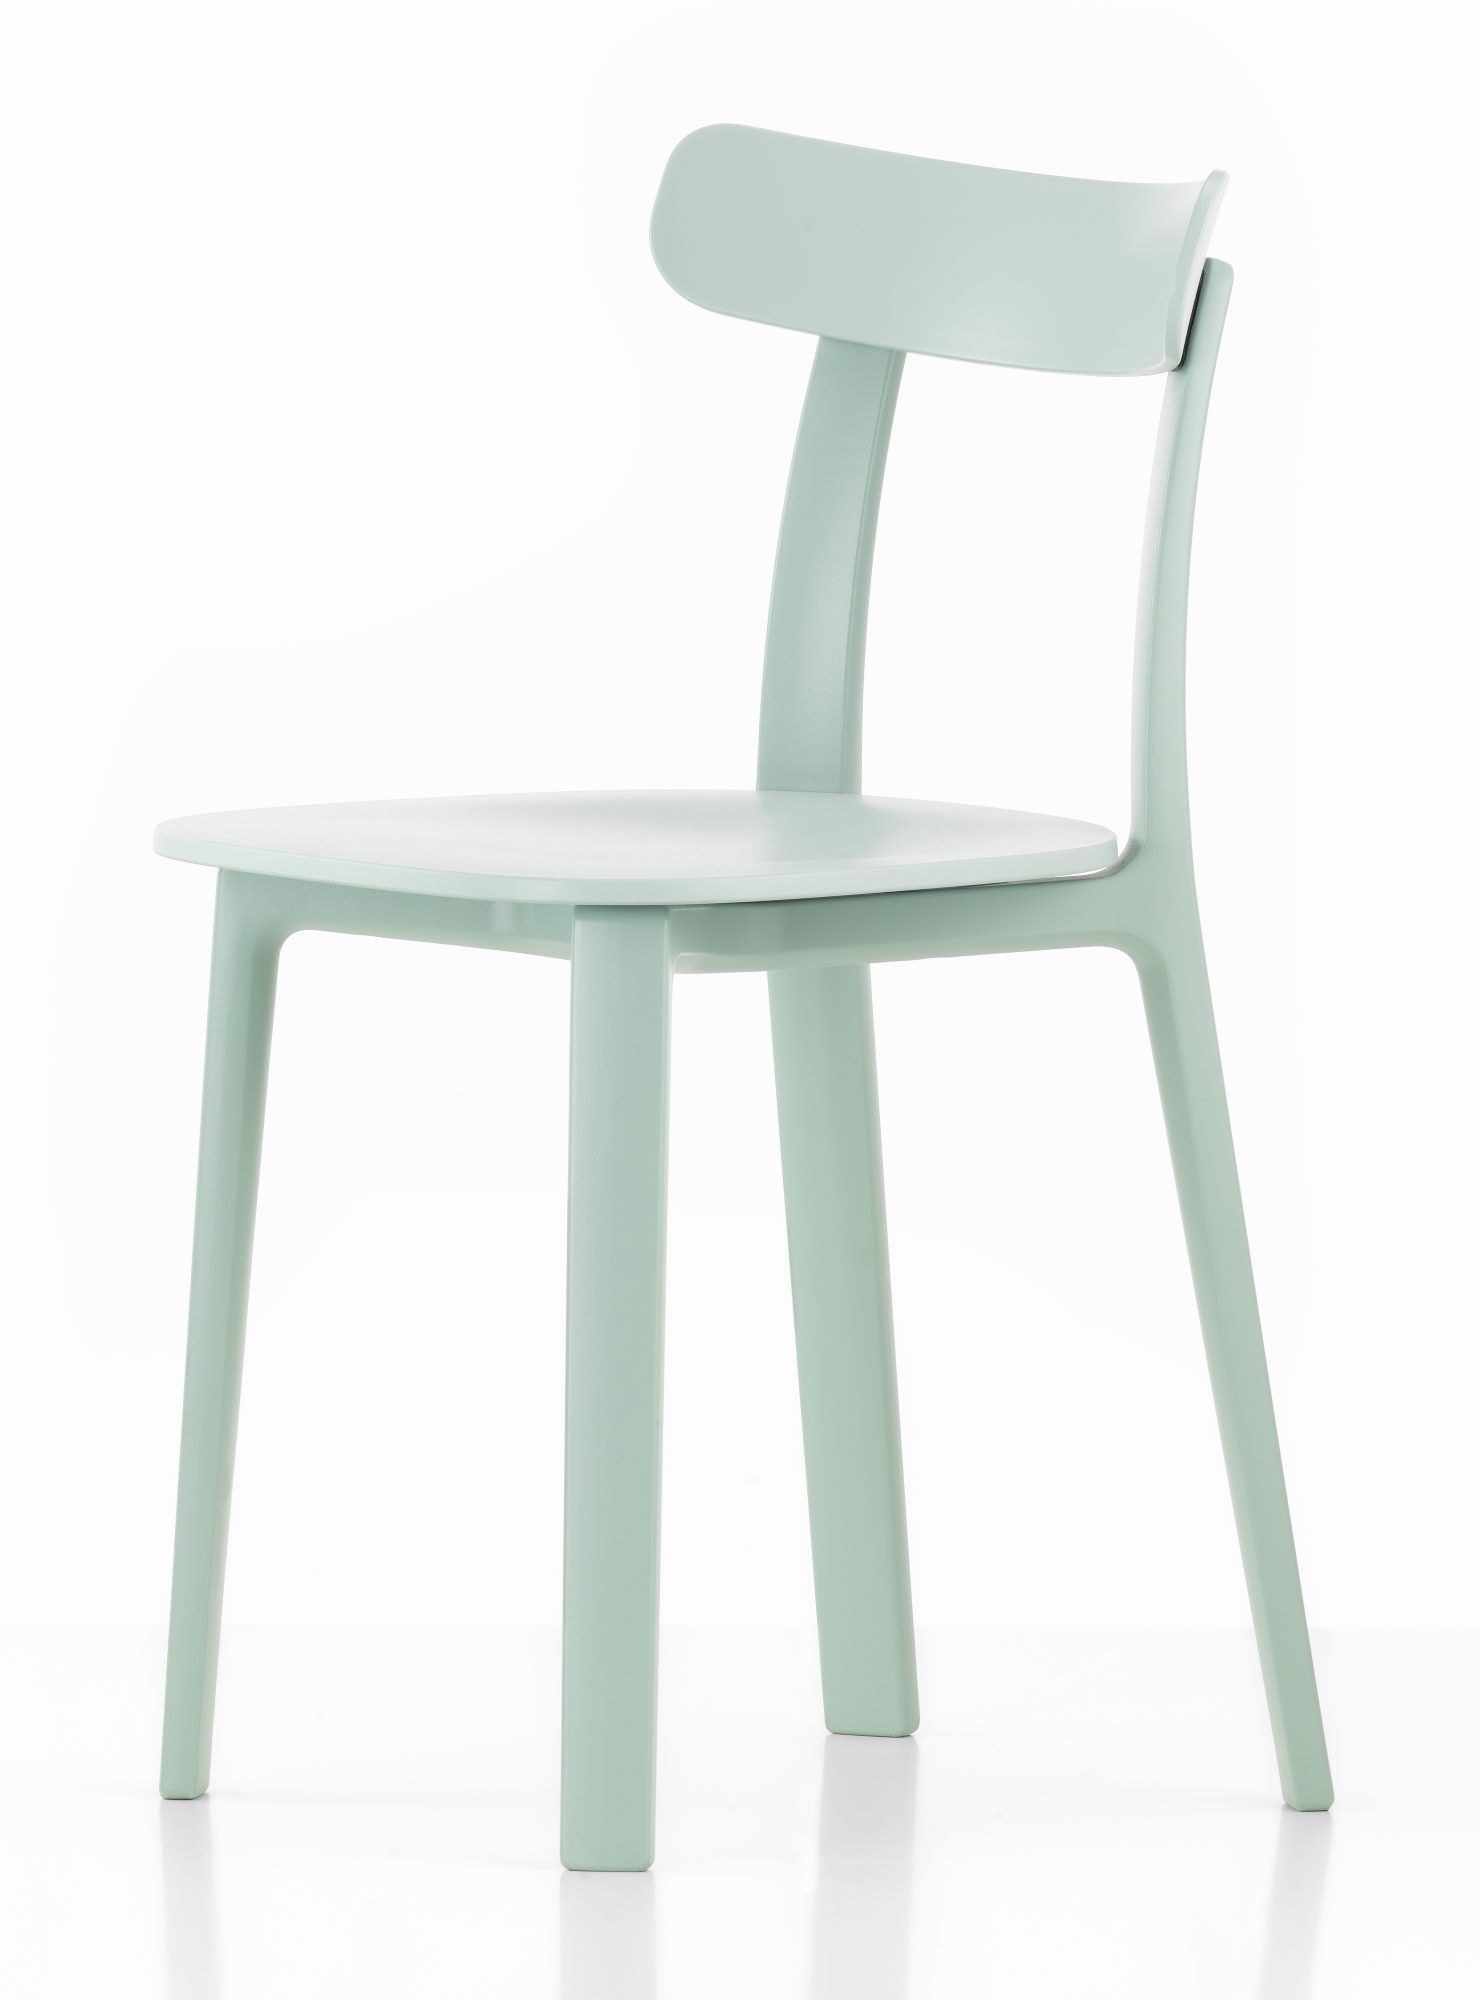 Esszimmerstühle Pastell All Plastic Chair Outdoor Stuhl Vitra Designed By Jasper